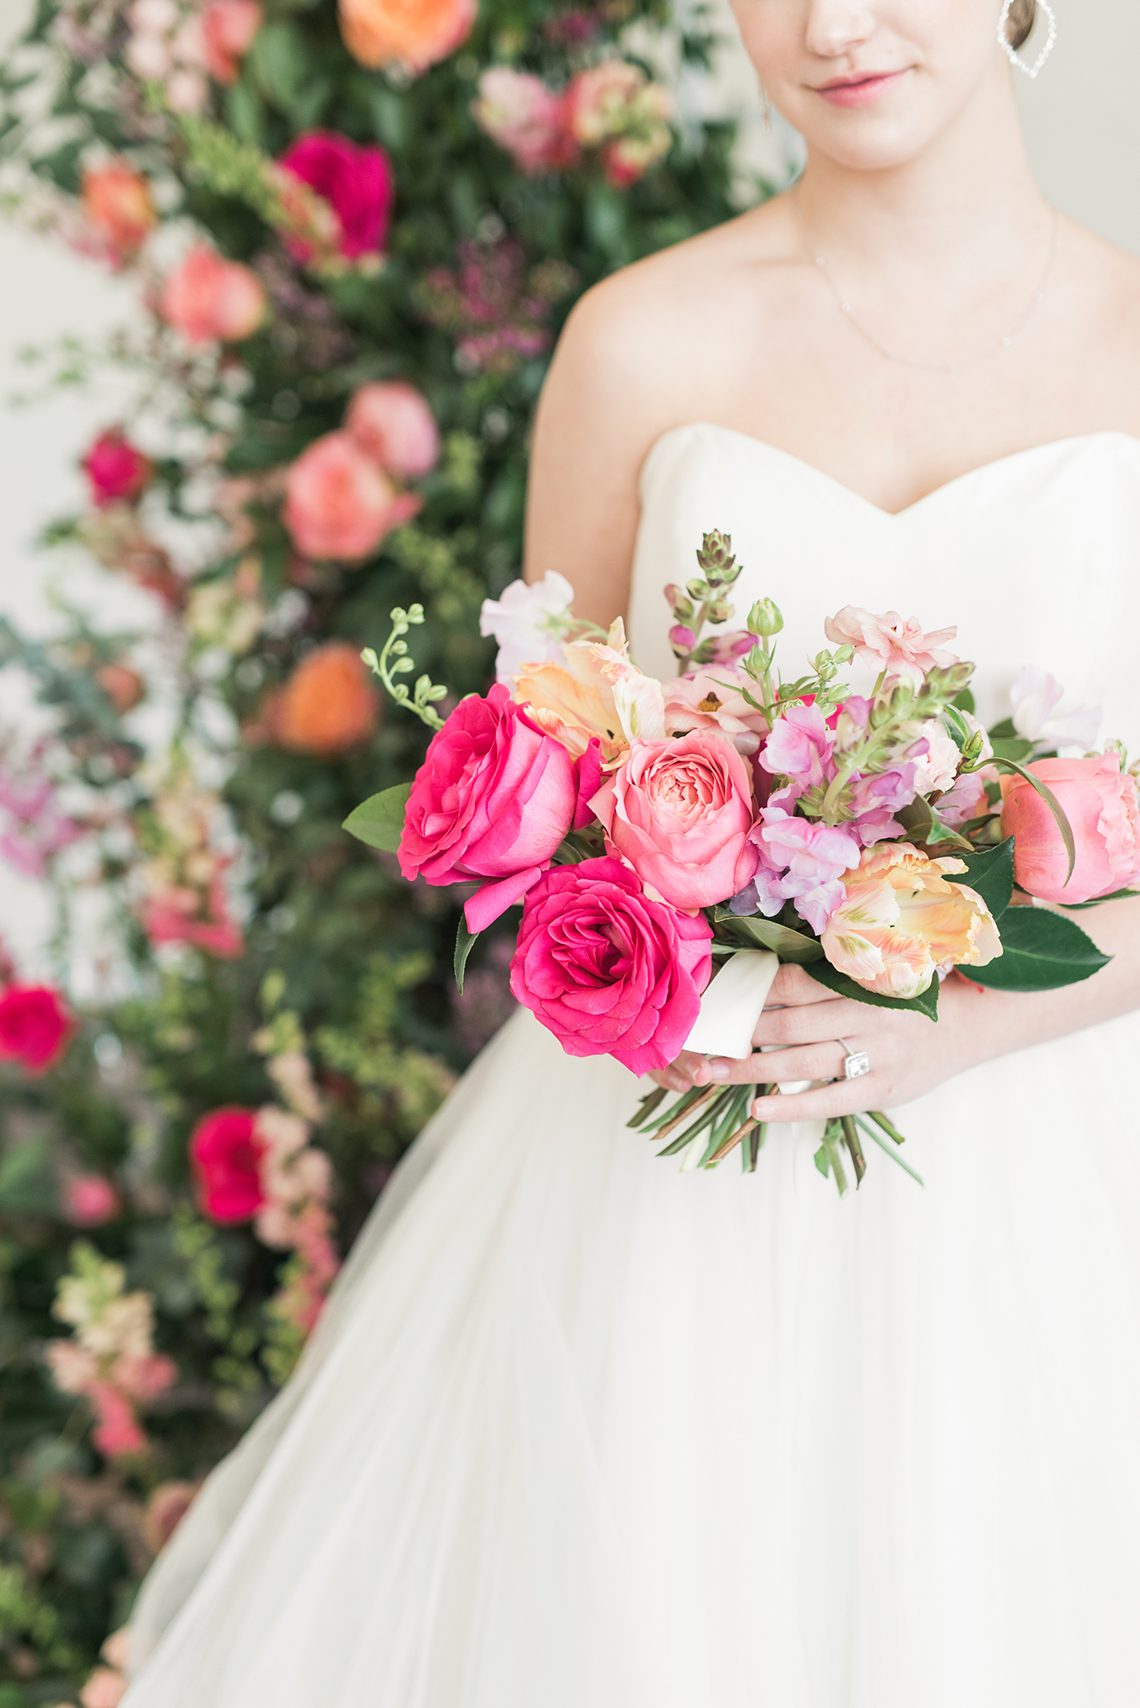 Floral-filled Indoor Garden Wedding Inspiration – Cristy Angulo Photography 22